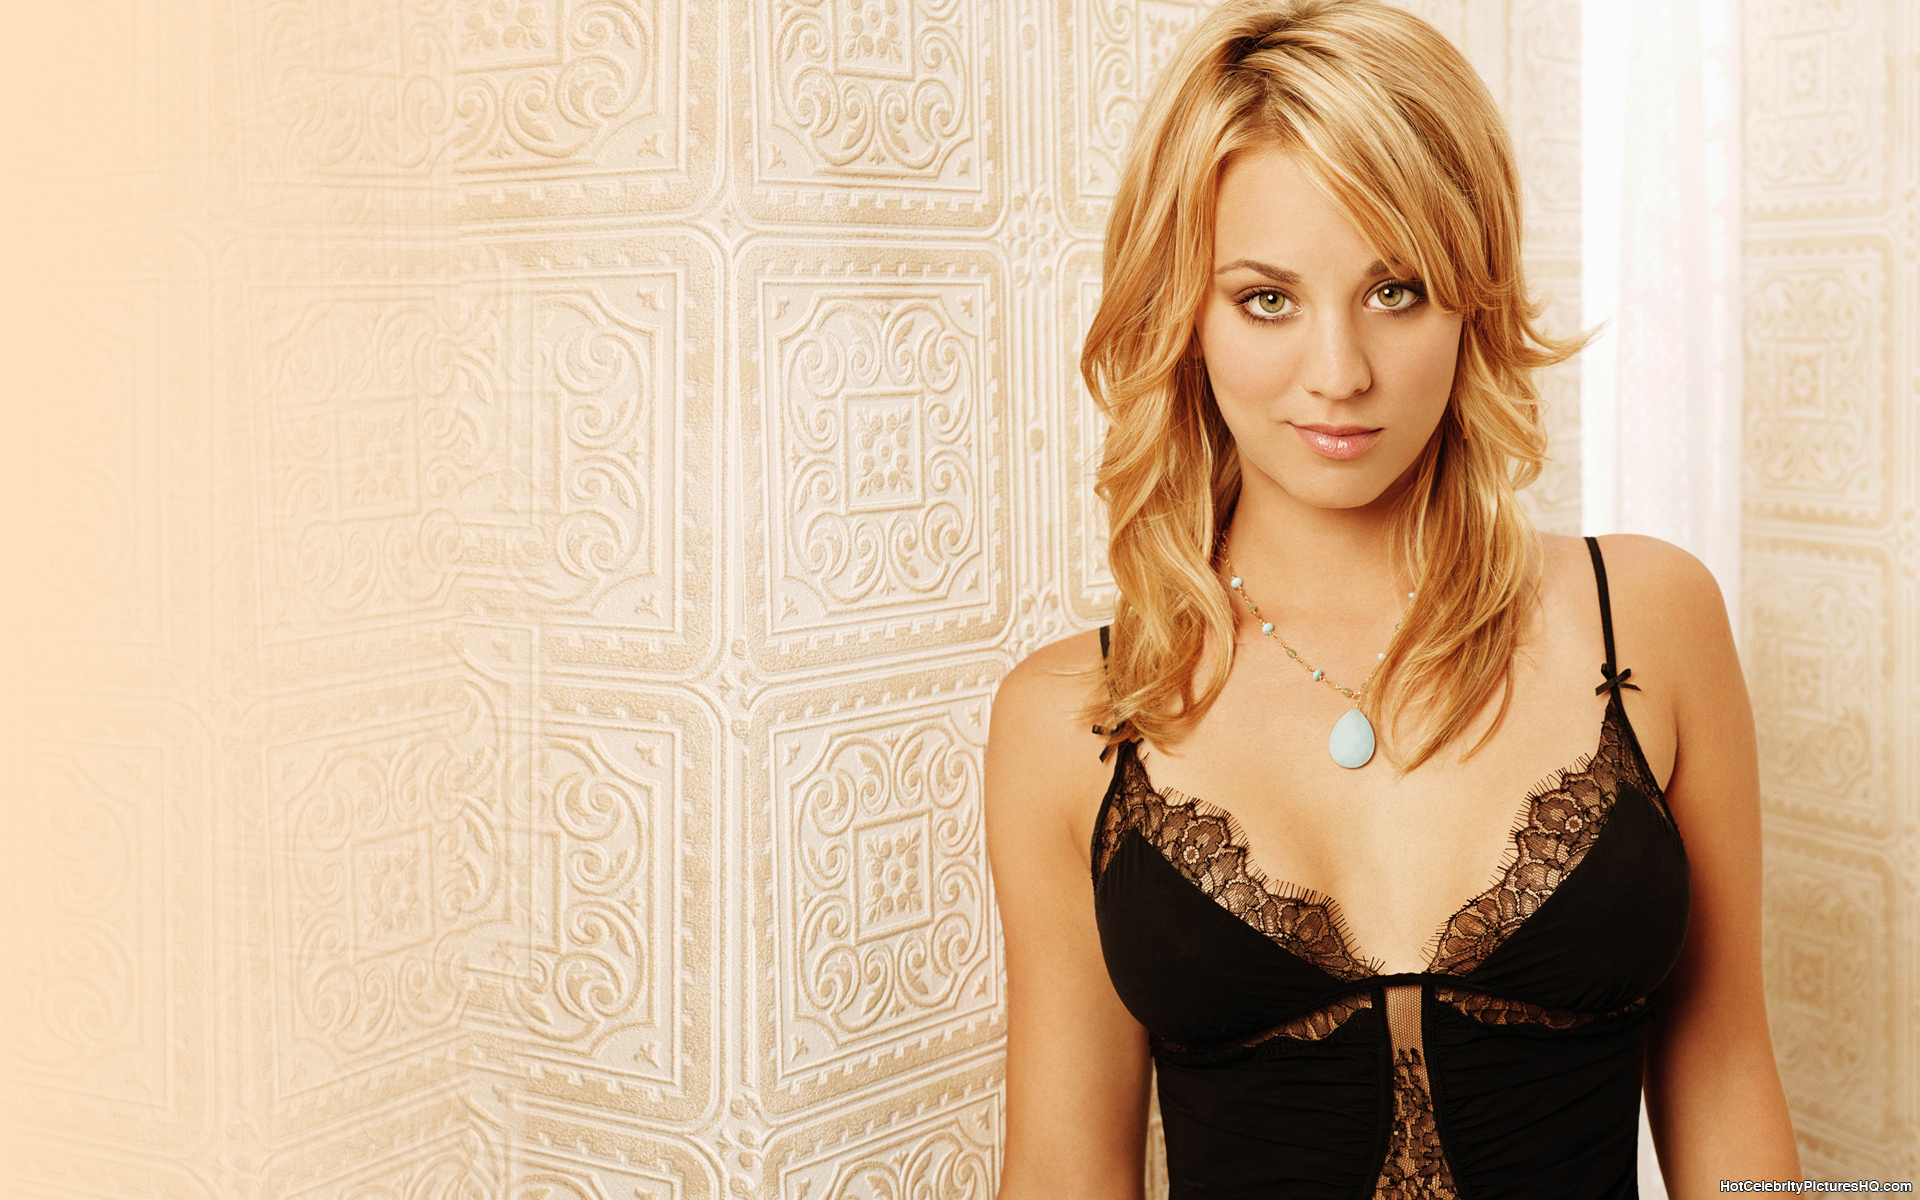 Kaley Cuoco HD Wallpaper   1920 x 1200 1920x1200